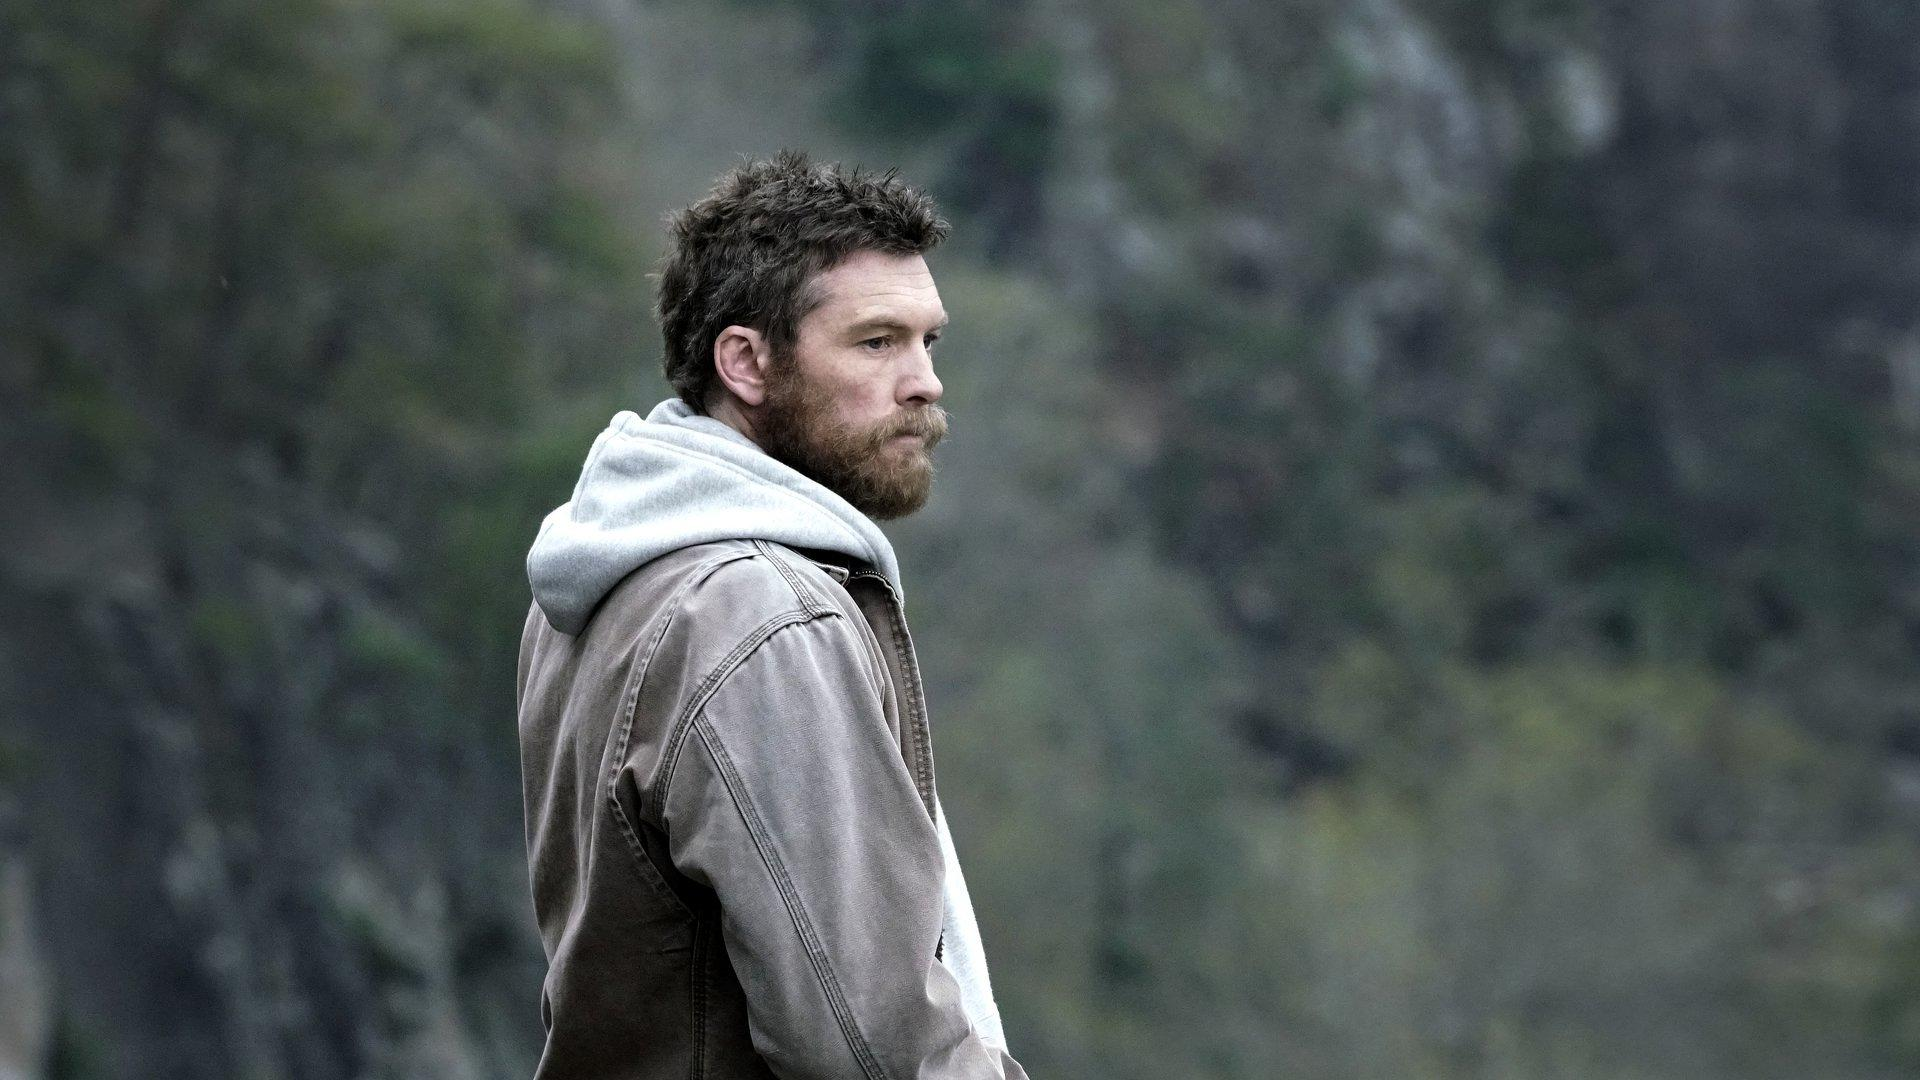 Manhunt-Unabomber--Sam-Worthington-Cultural-Hater